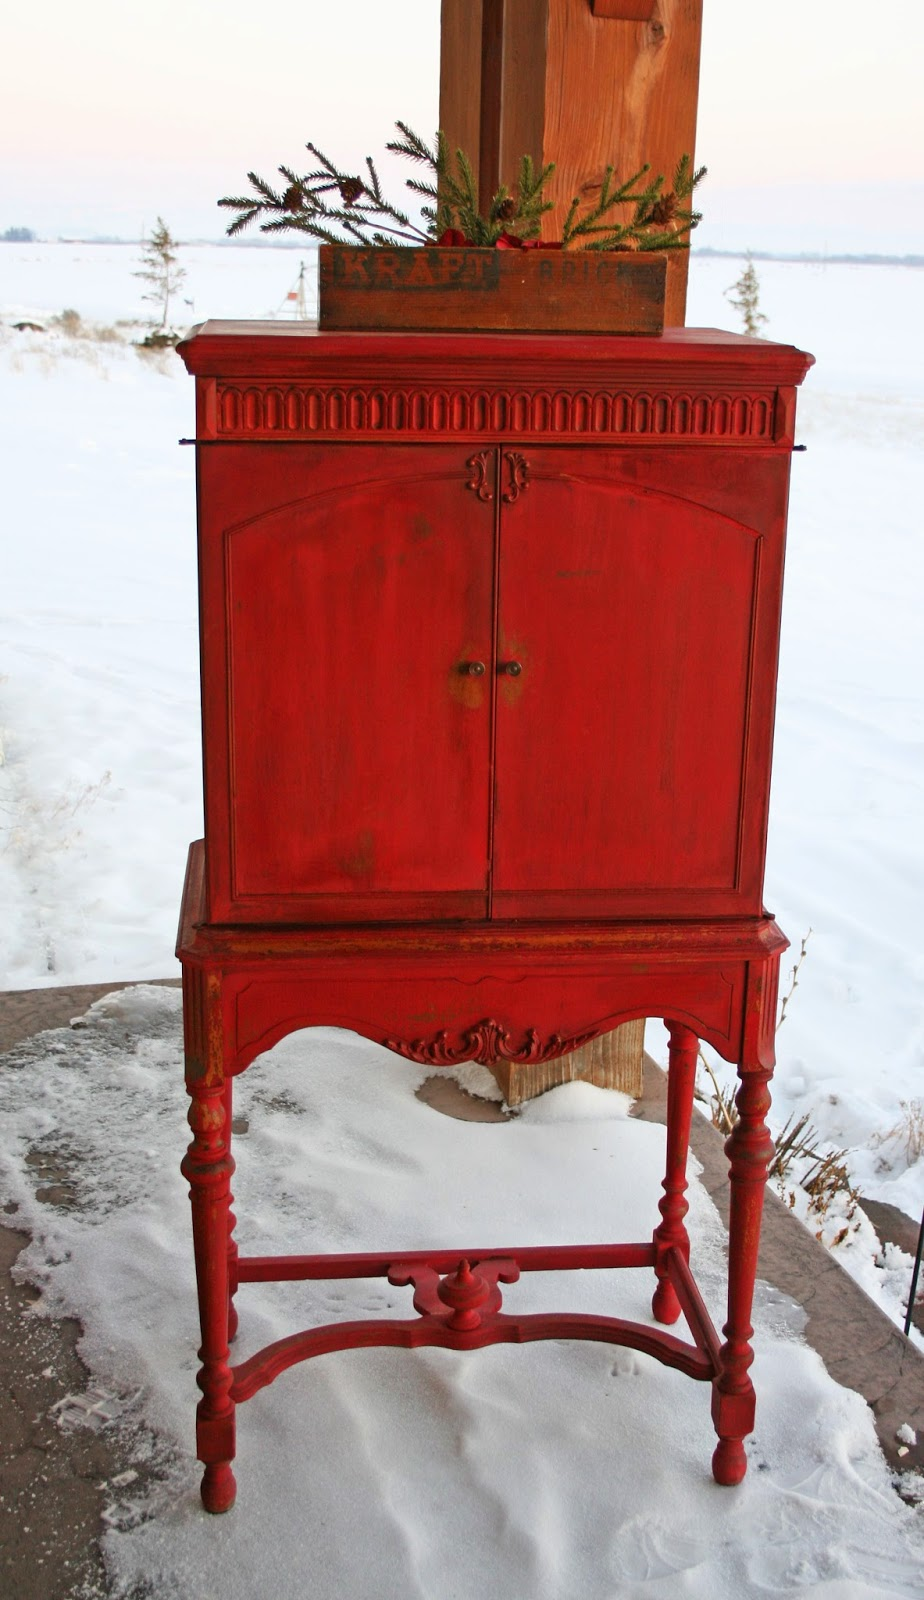 Amazing MMS Tricycle Red Milk Paint Cabinet from Antique Recreation | Friday Favorites Furniture at www.andersonandgrant.com